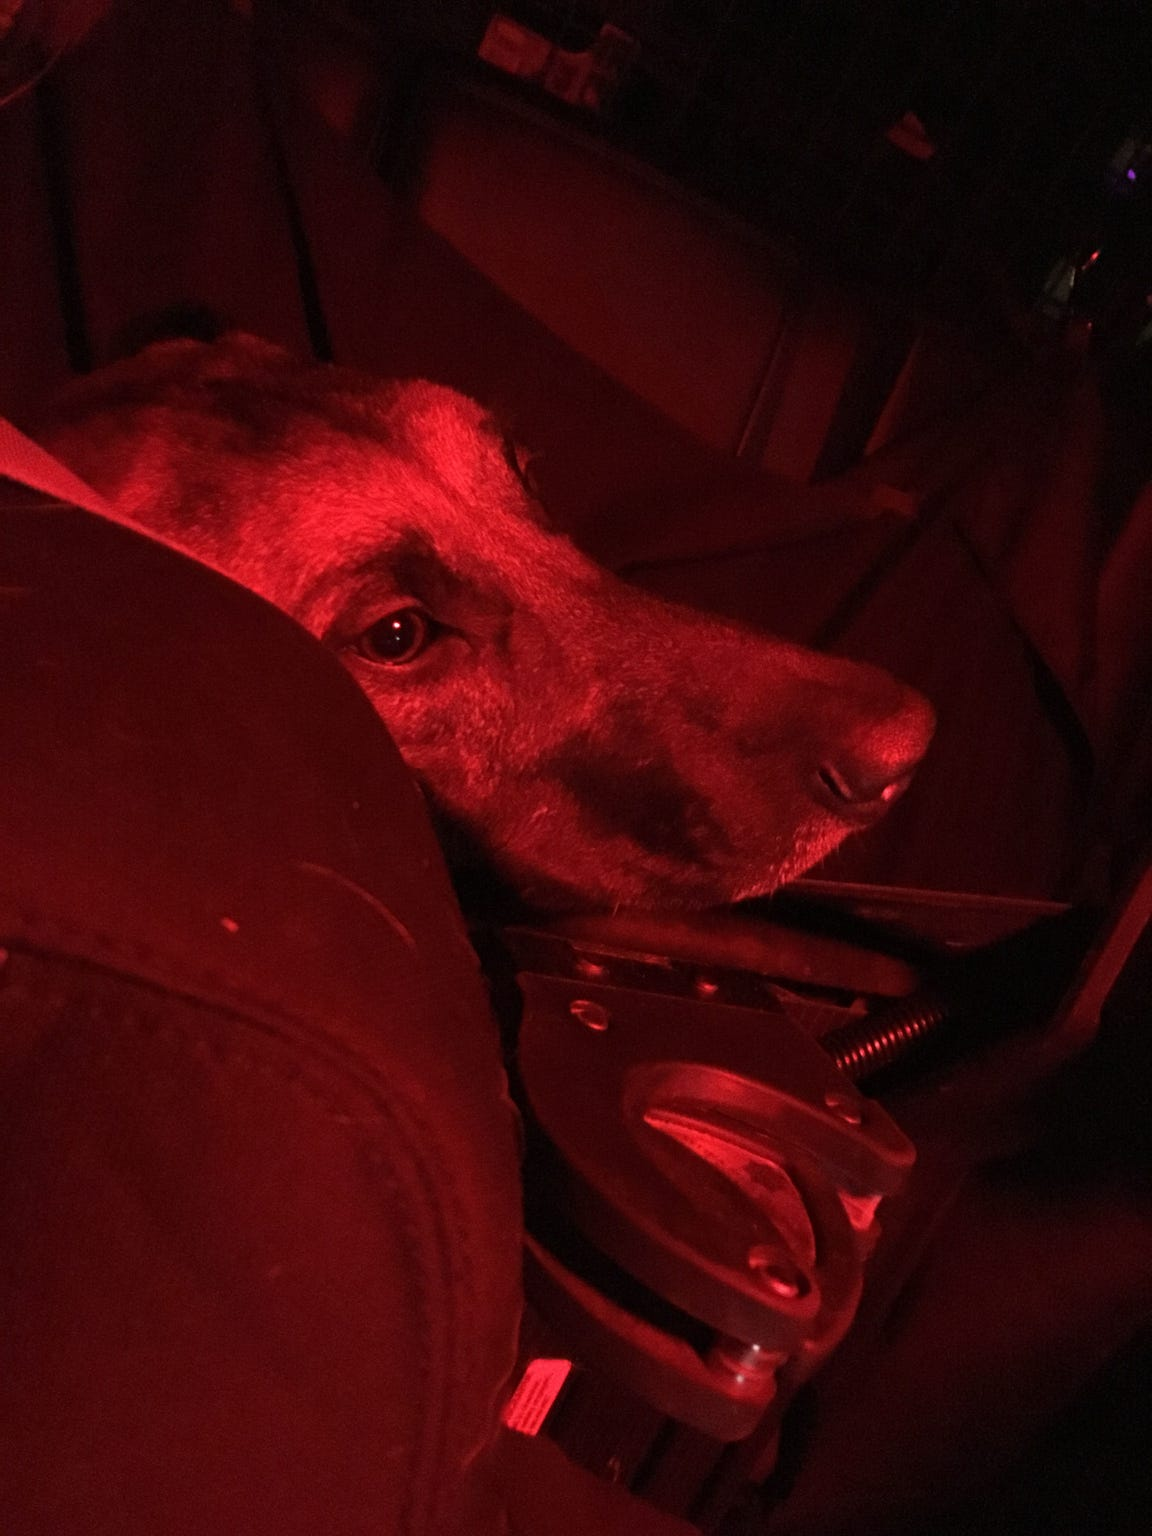 K9 Rush relaxes in the backseat of South Burlington Police Officer Sarah Bellavance's cruiser during routine traffic patrol on Dec. 6, 2018.